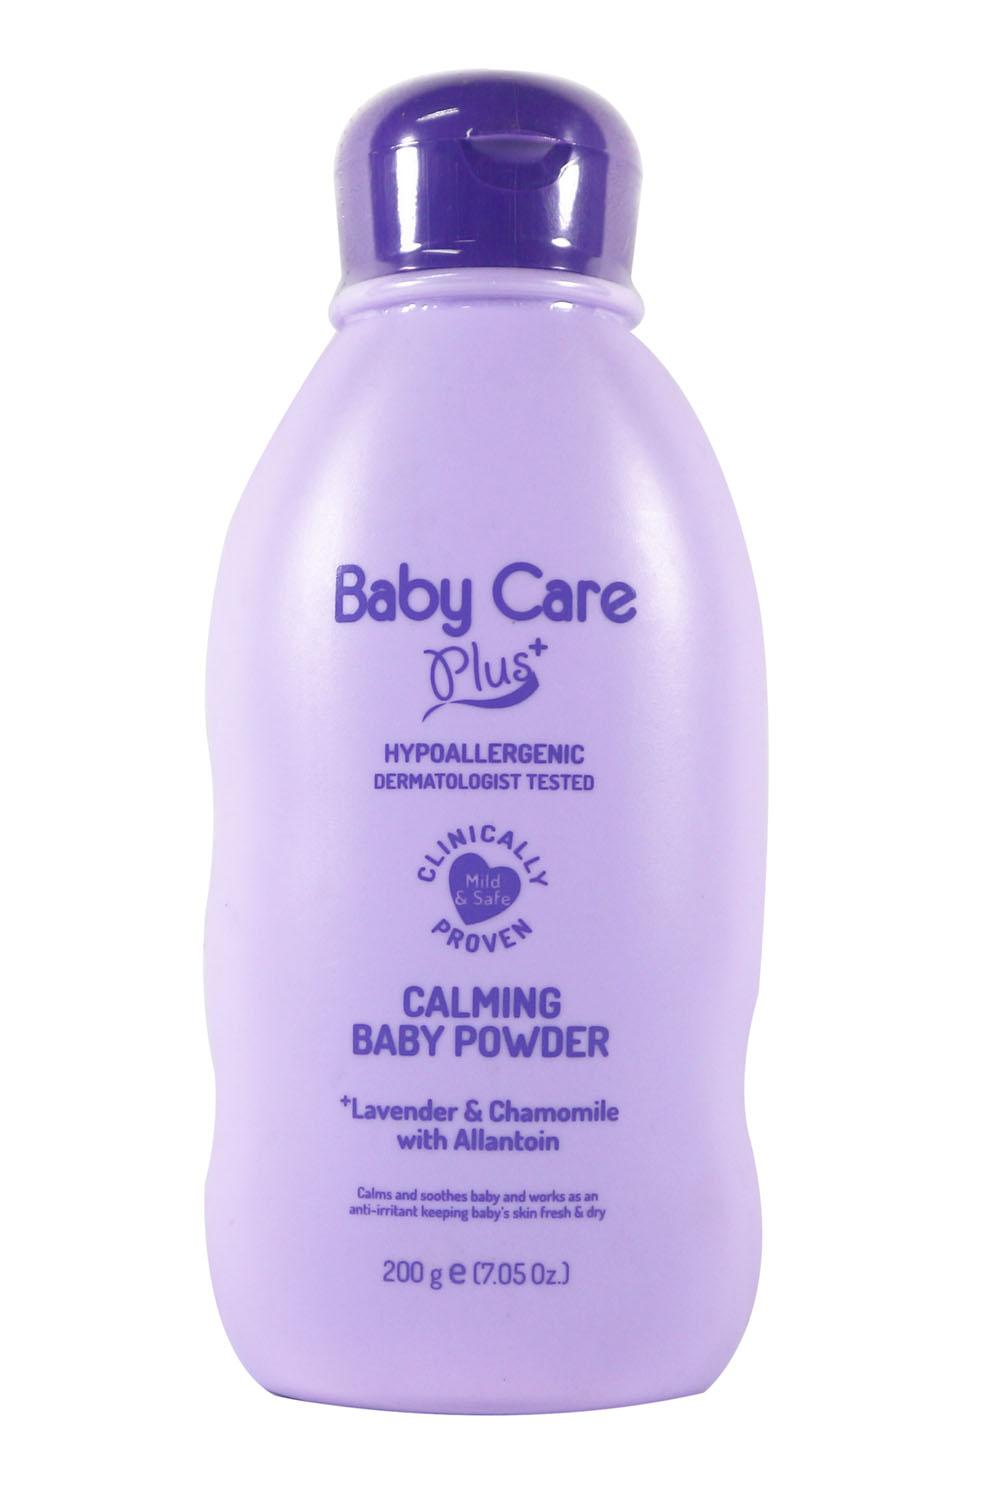 Baby Powder For Sale Talcum Online Brands Prices Zwitsal Classic Fresh Floral 500gr Twin Pack Care Plus Calming 200g Lavender Chamomile With Allantoin